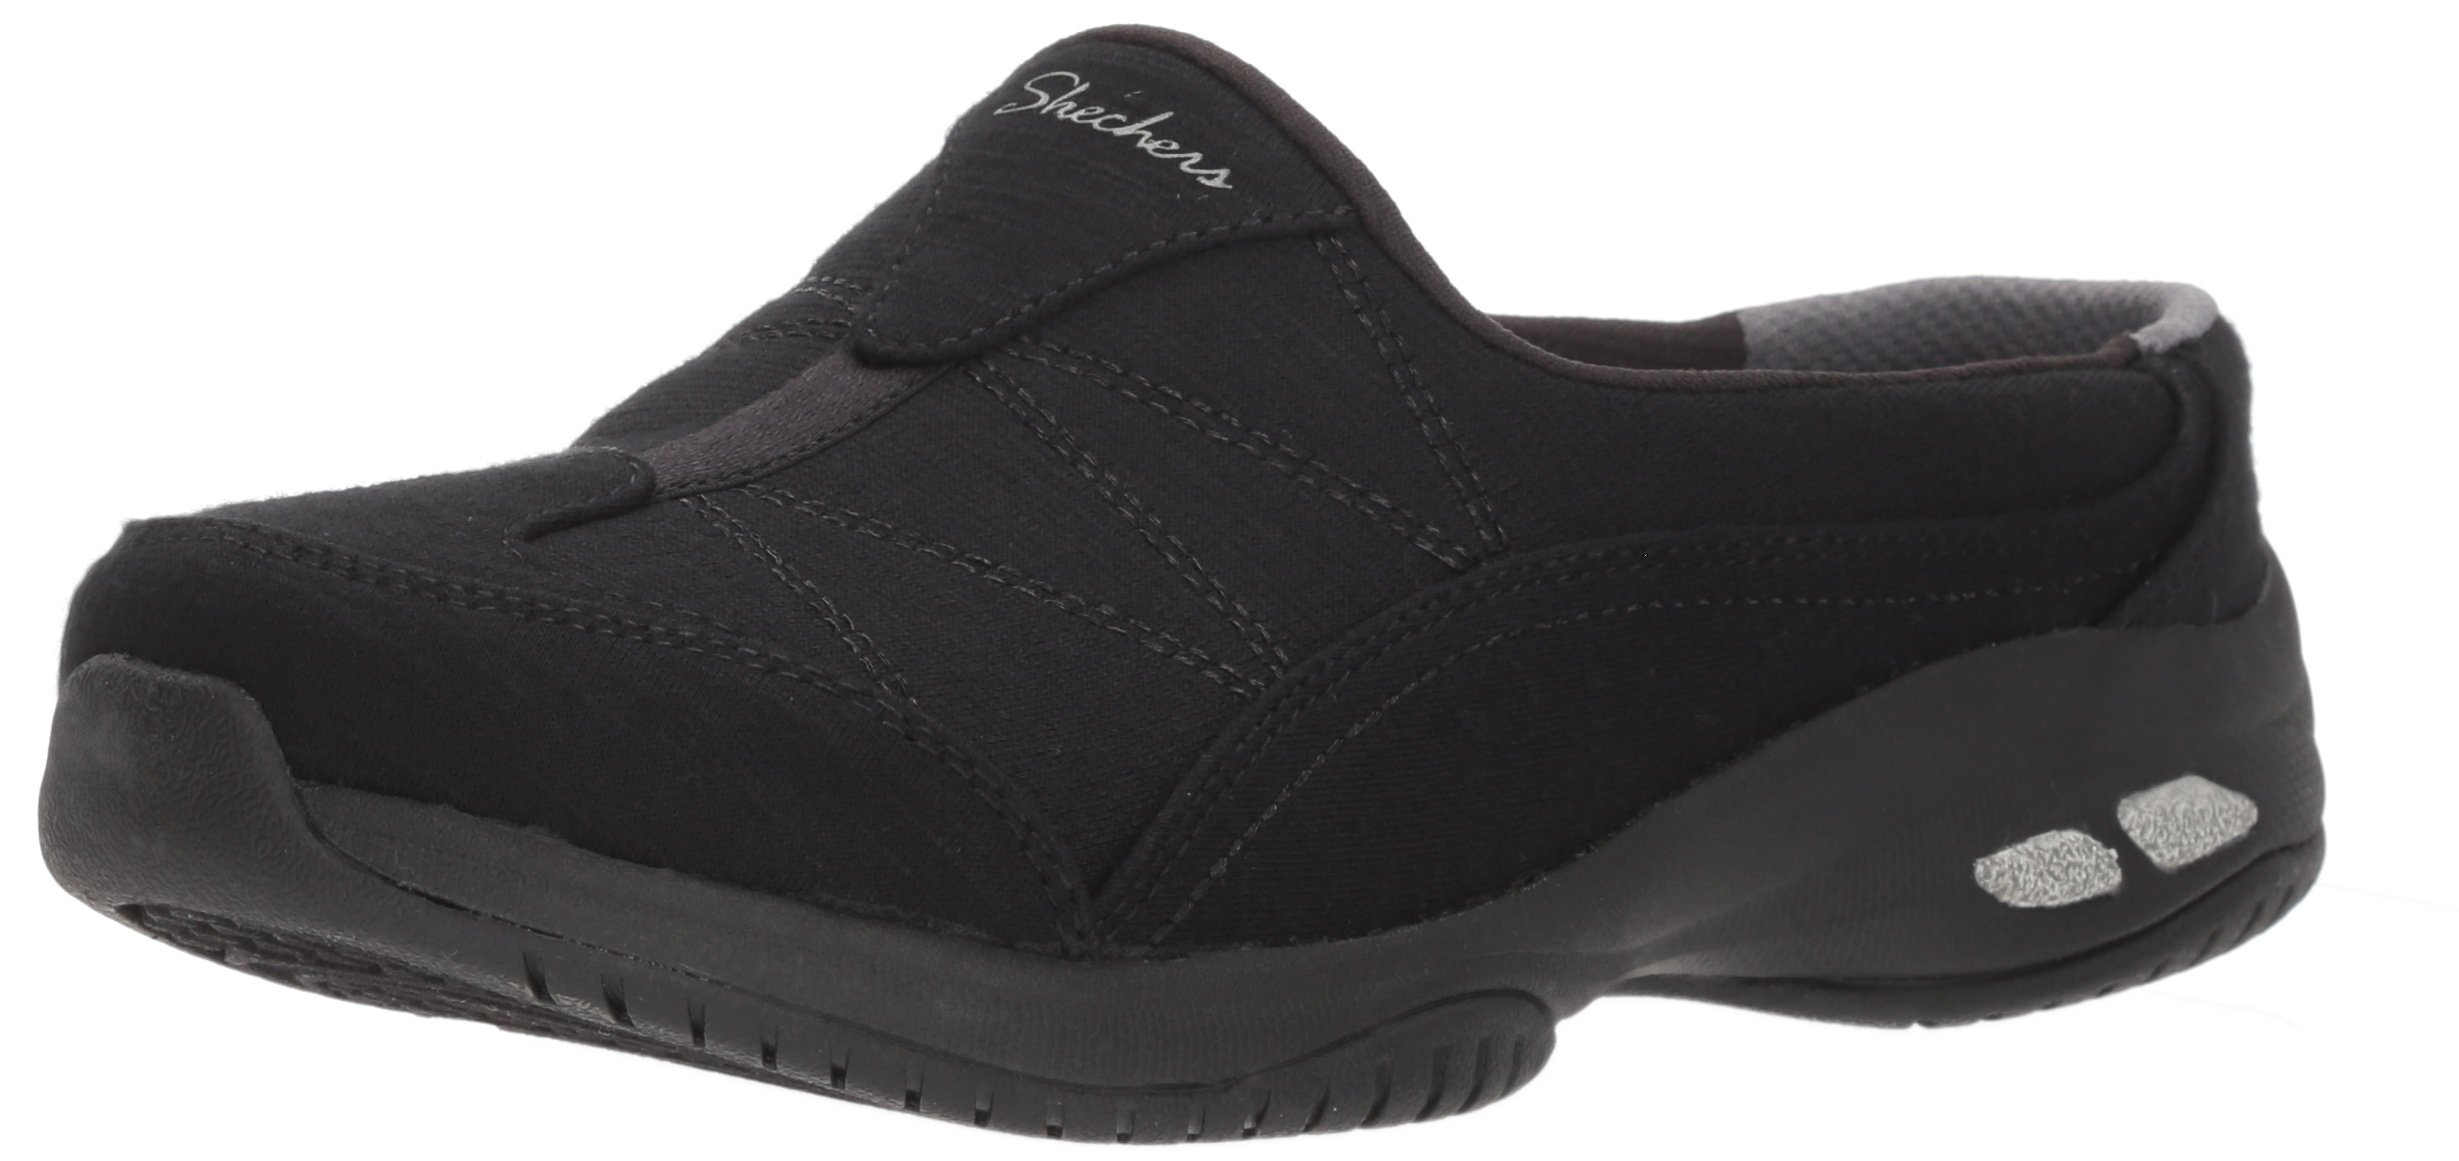 Skechers Women's Commute-Carpool-Heathered Deco Stitch Mule, Black/Black, 8 W US